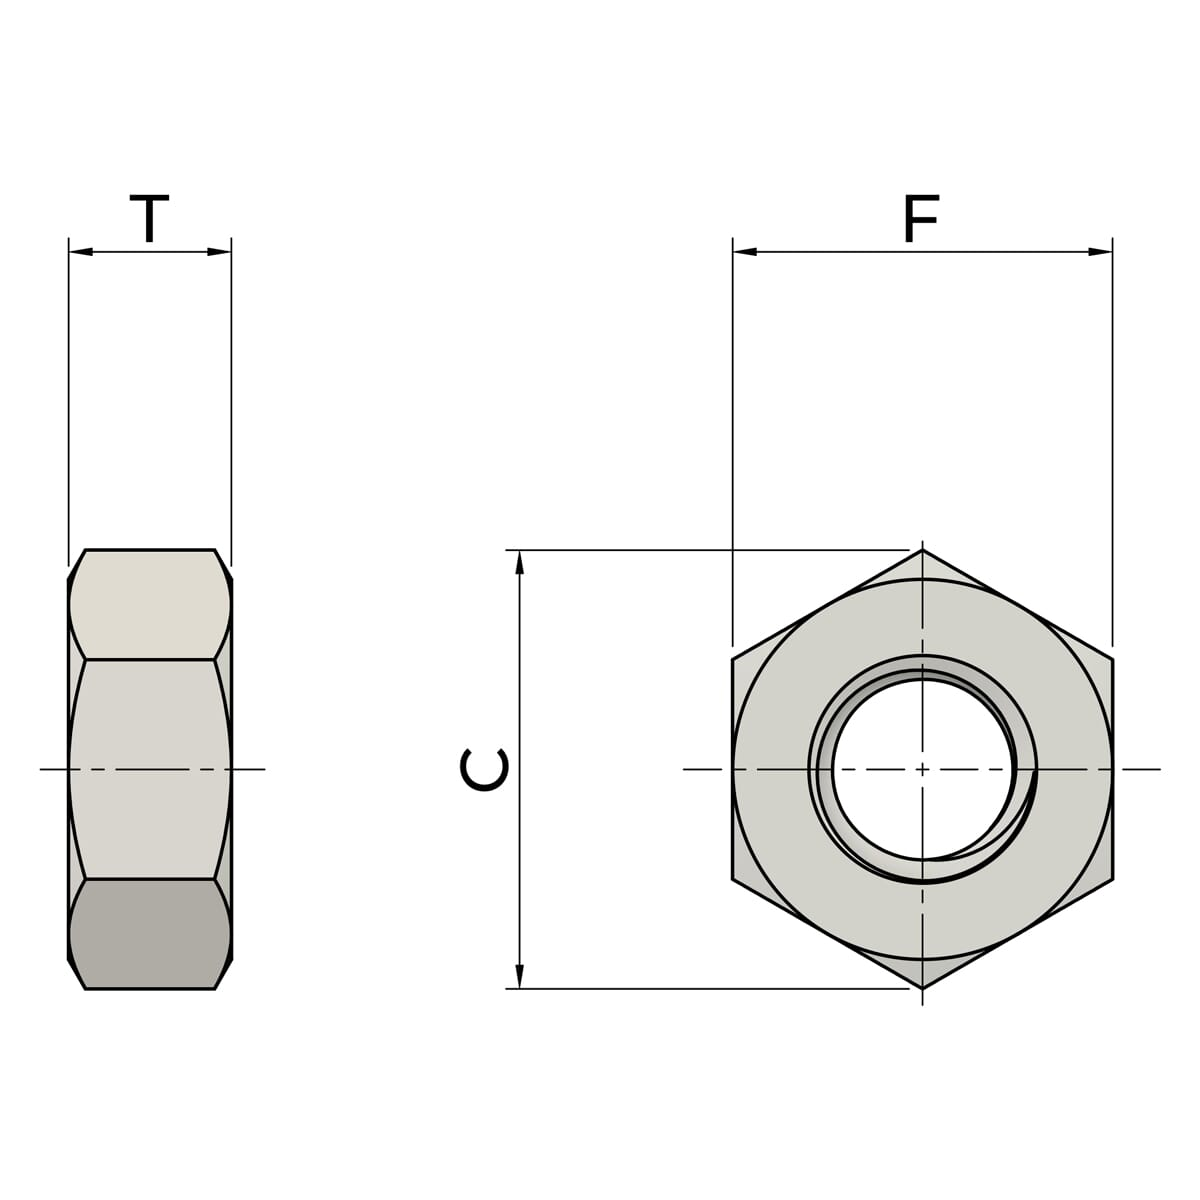 M12 Hexagon Nuts (DIN 934) - Stainless Steel (A2) Drawing